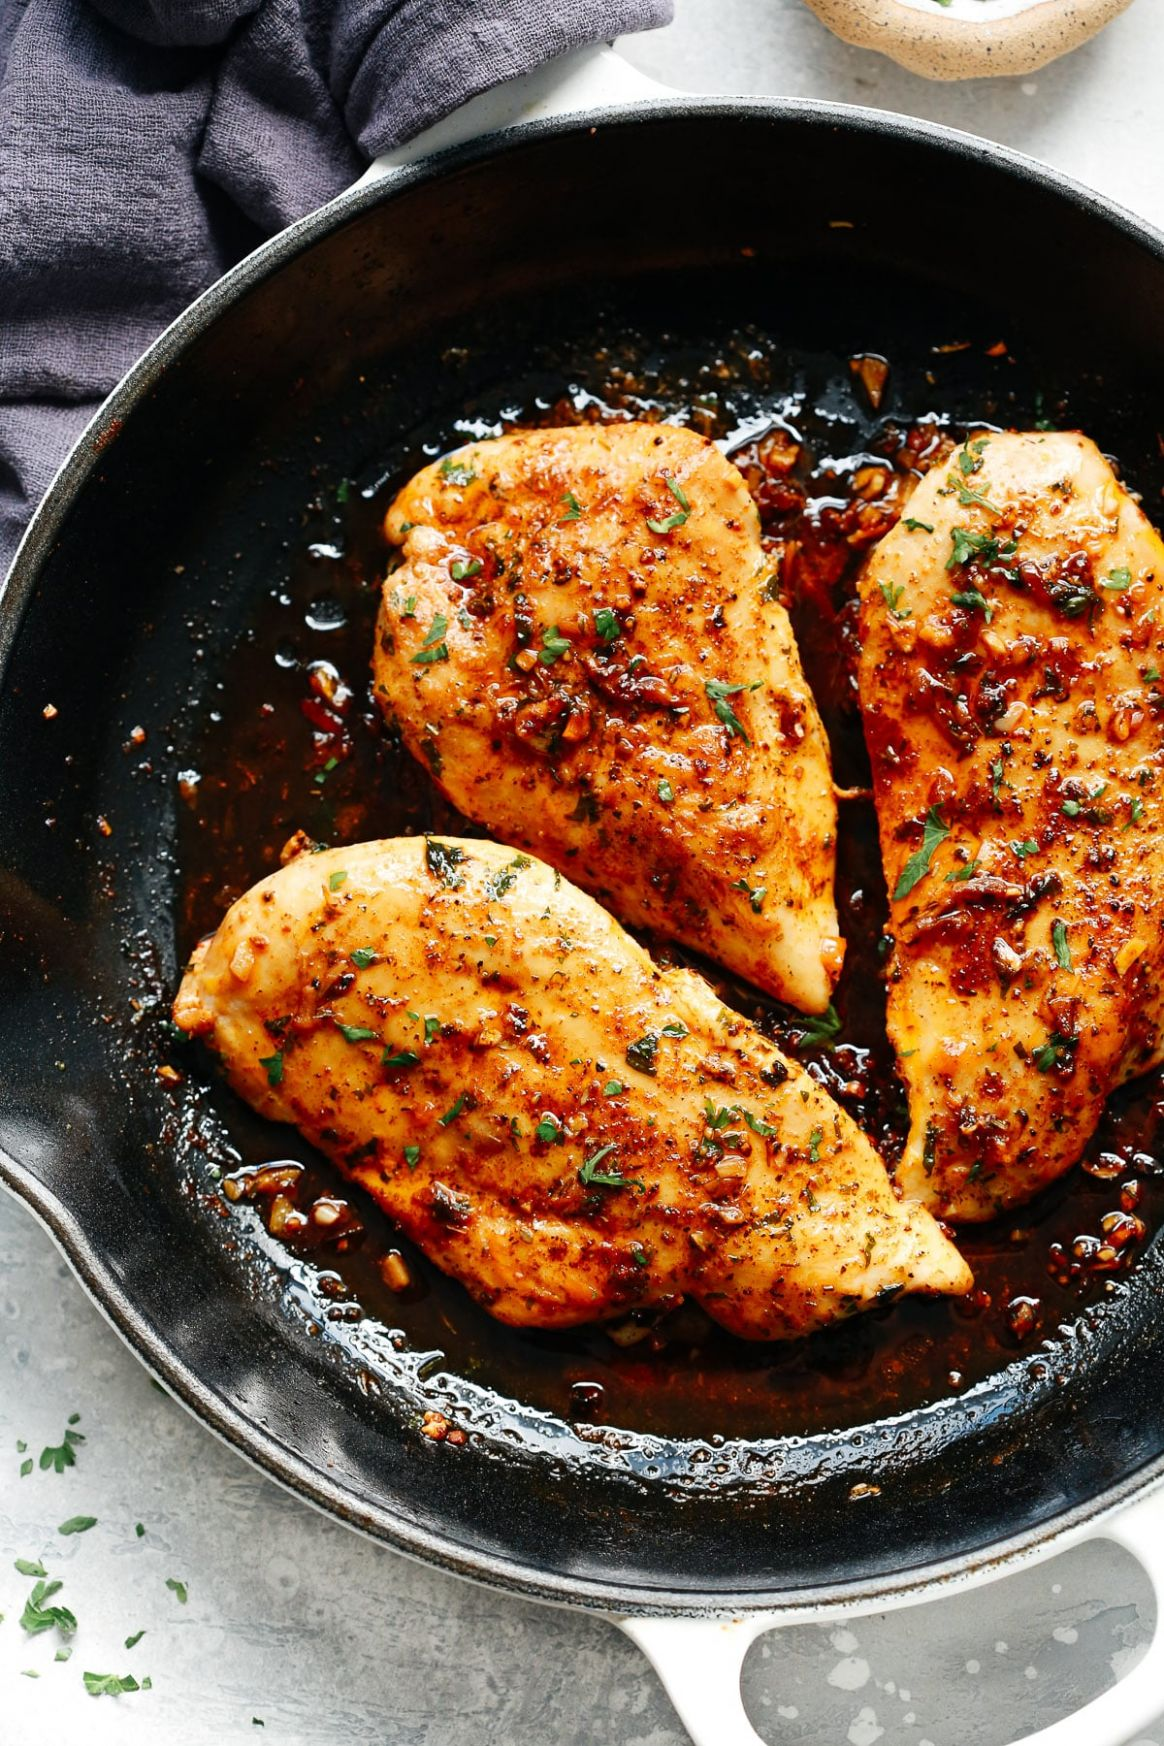 Garlic Butter Baked Chicken Breast - Simple Recipes To Make With Chicken Breast